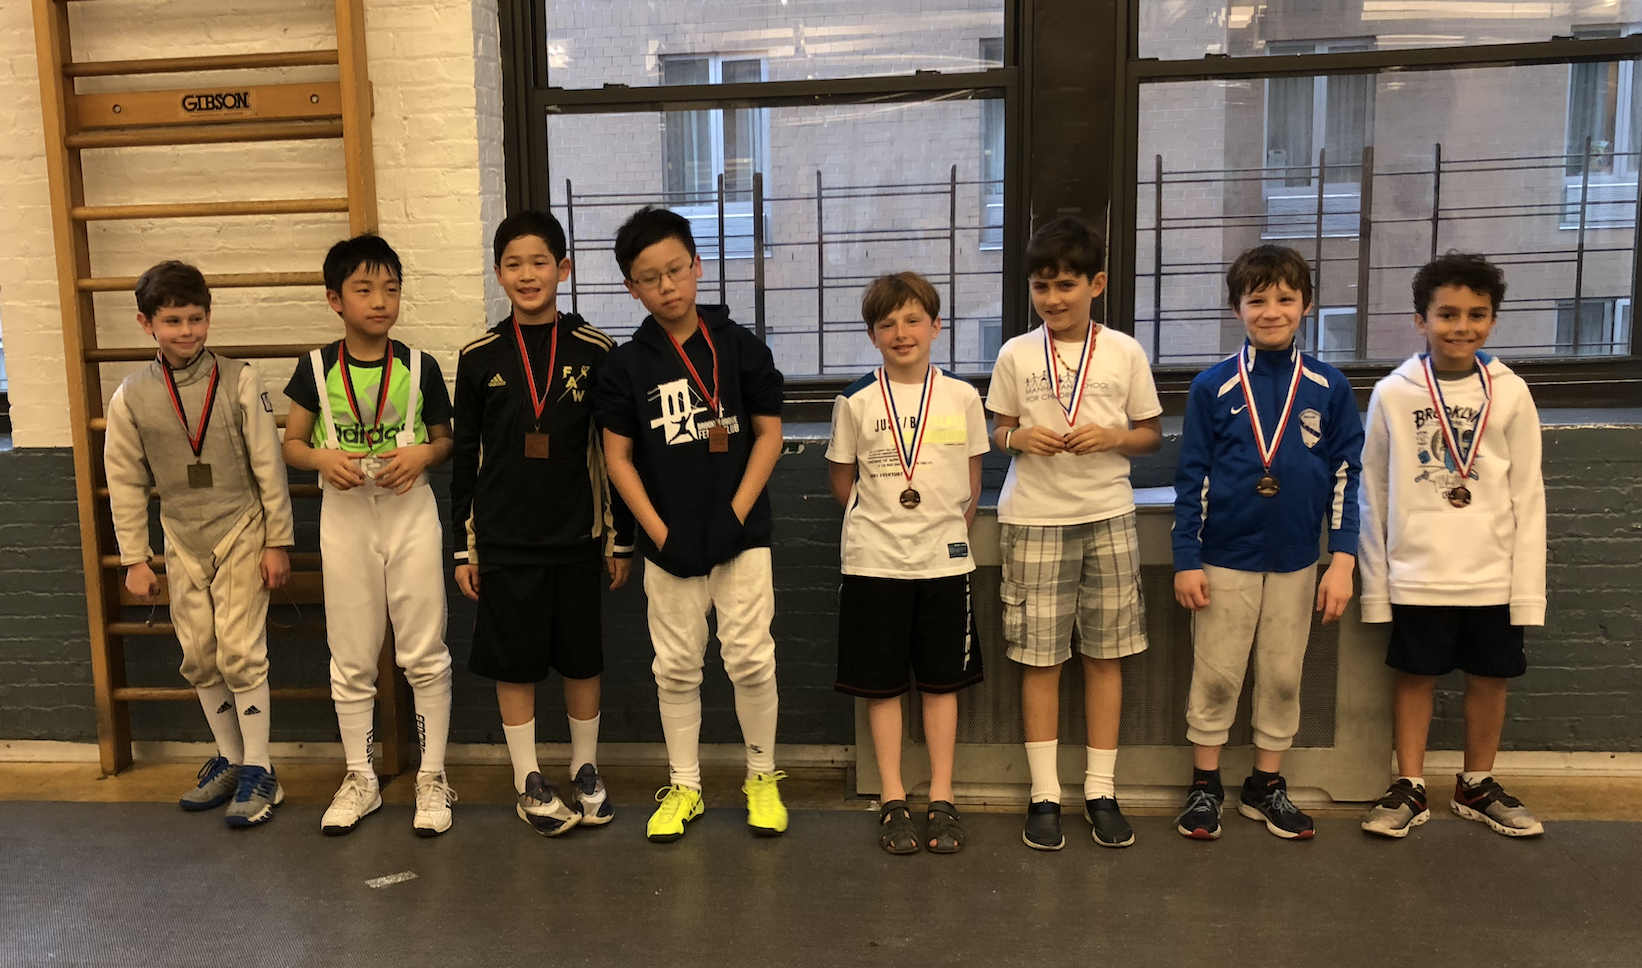 Fencers Club - Y10 men's foil Henry Woodcock 7th place   May 26th 2019